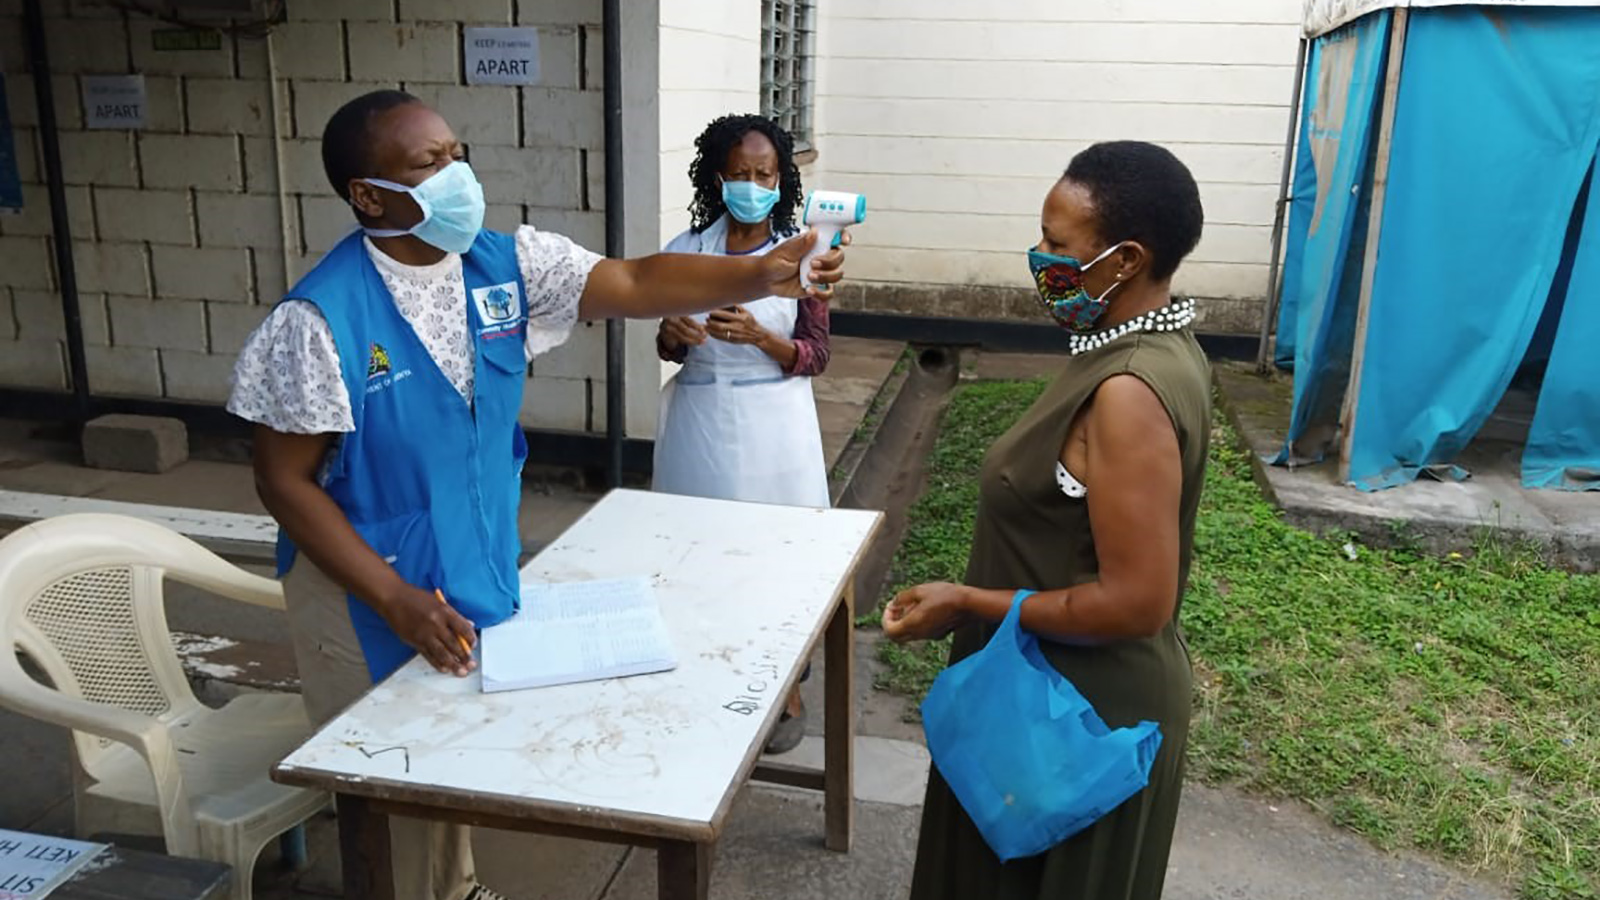 Community health volunteer taking temperatures at health facility in Nairobi.